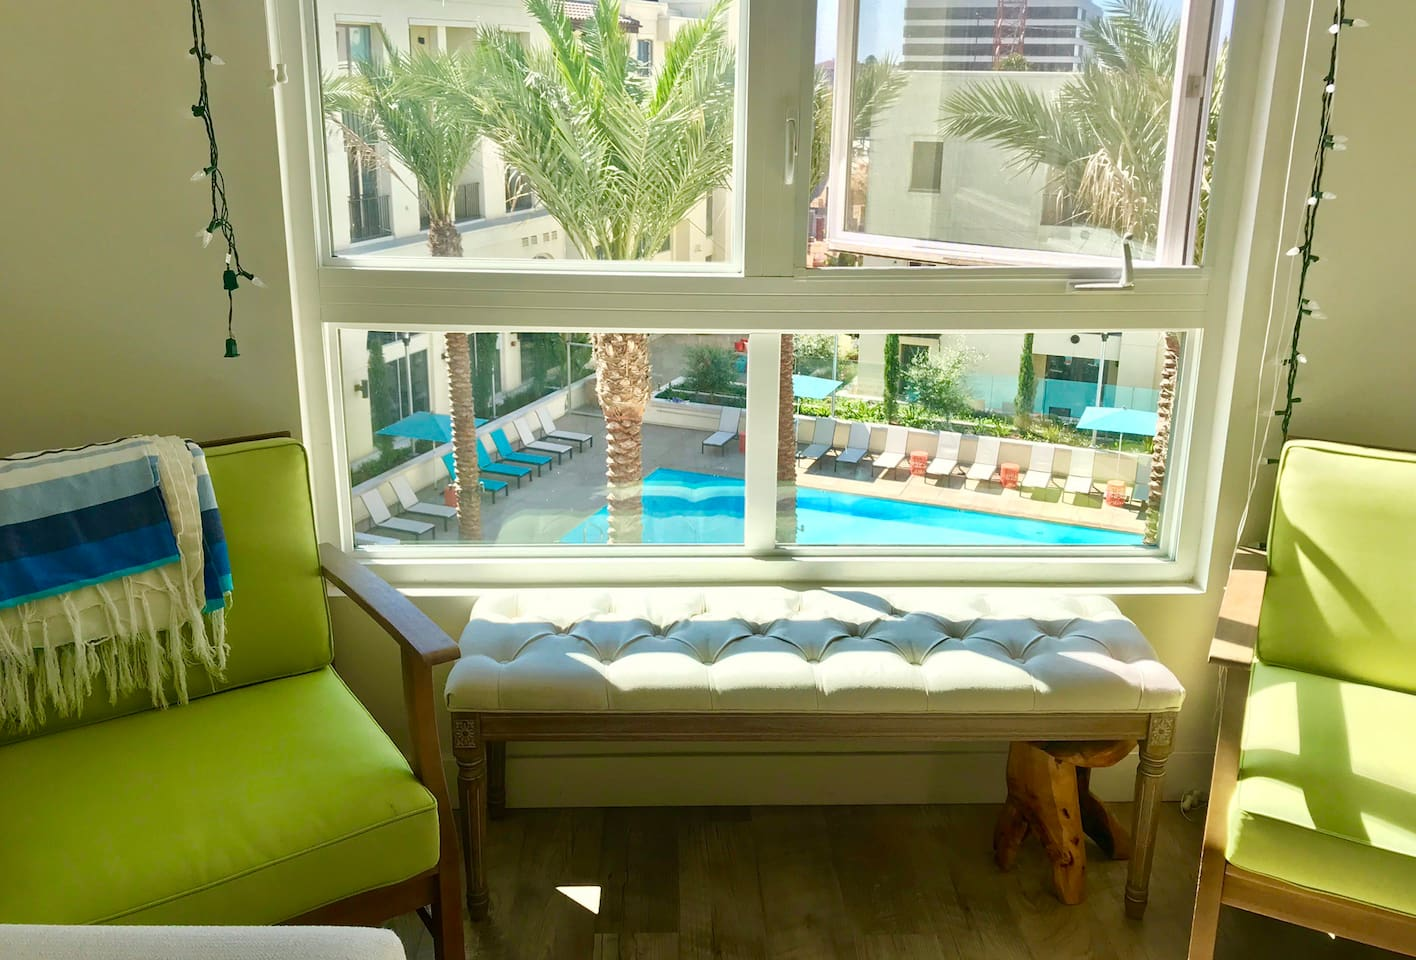 Living room with pool and palmtree view